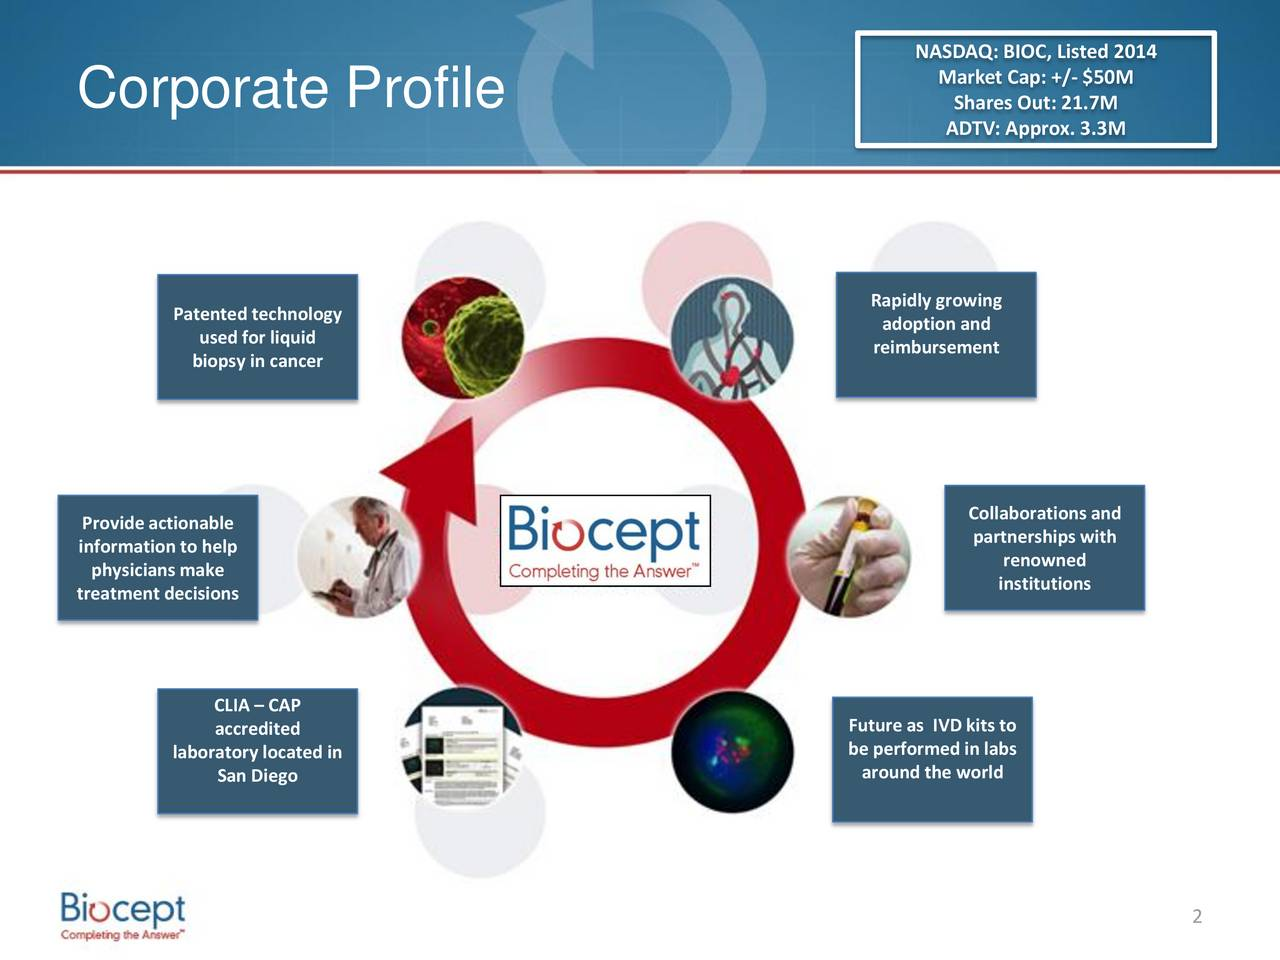 Market Cap: +/- $50M Corporate Profile Shares Out: 21.7M ADTV: Approx. 3.3M Rapidly growing Patented technology adoption and used for liquid biopsy in cancer reimbursement Collaborations and Provide actionable partnershipswith information to help physicians make renowned treatment decisions institutions CLIA  CAP accredited Future as IVD kits to be performed in labs laboratory located in around the world San Diego 2